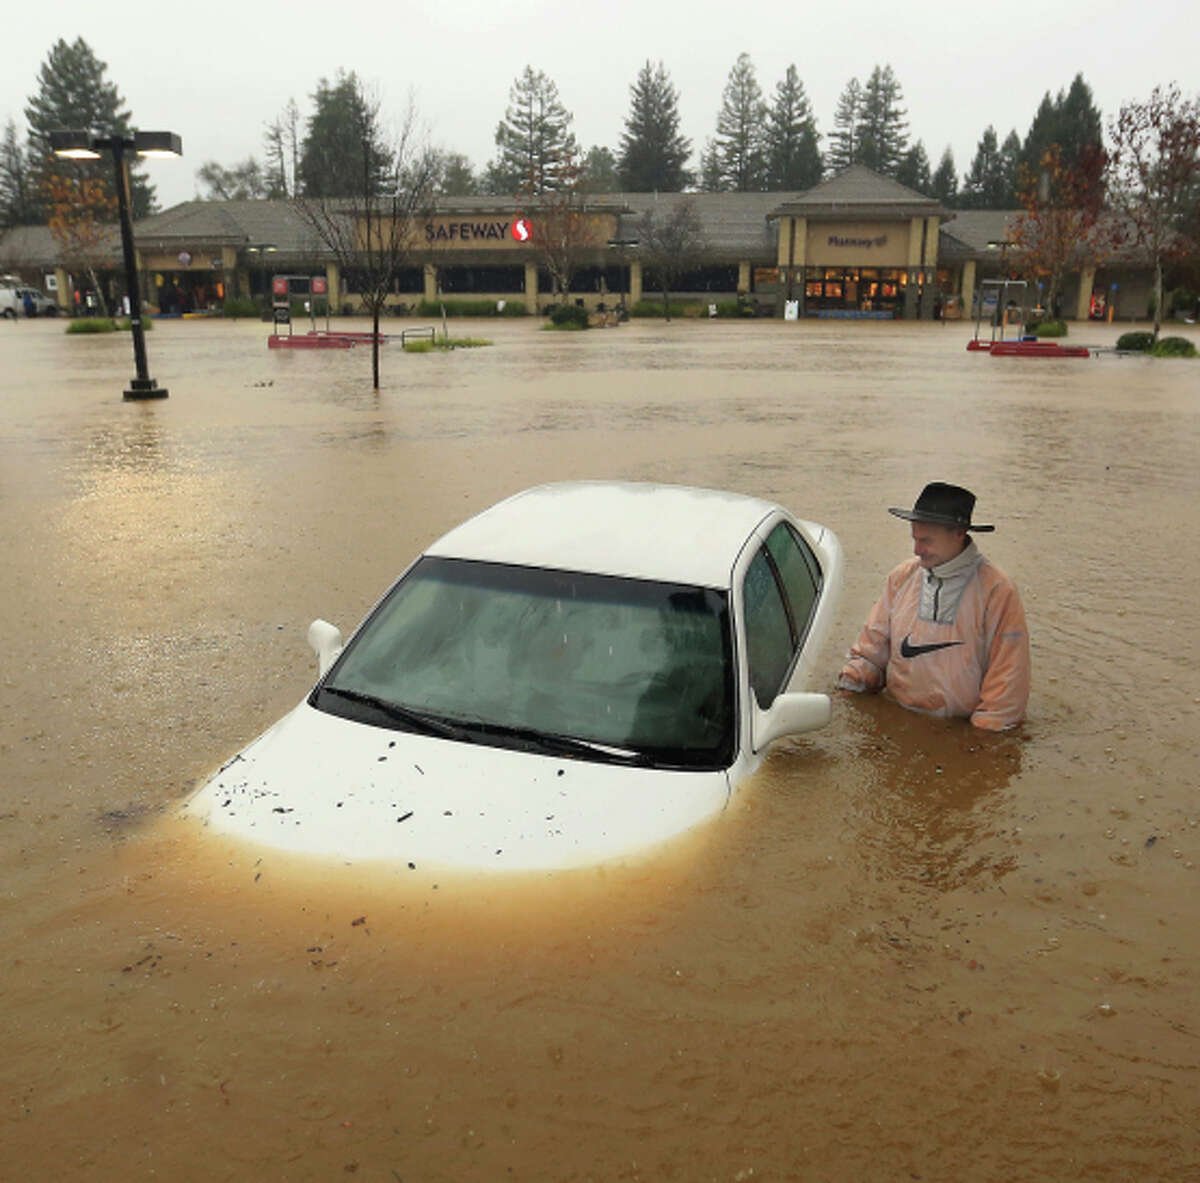 WHEN SAFEWAY SAYS NO OVERNIGHT PARKING, THEY MEAN IT: A Guerneville resident finds his car sitting window-deep in floodwater after leaving it overnight in the Safeway parking lot in Healdsburg, Calif.